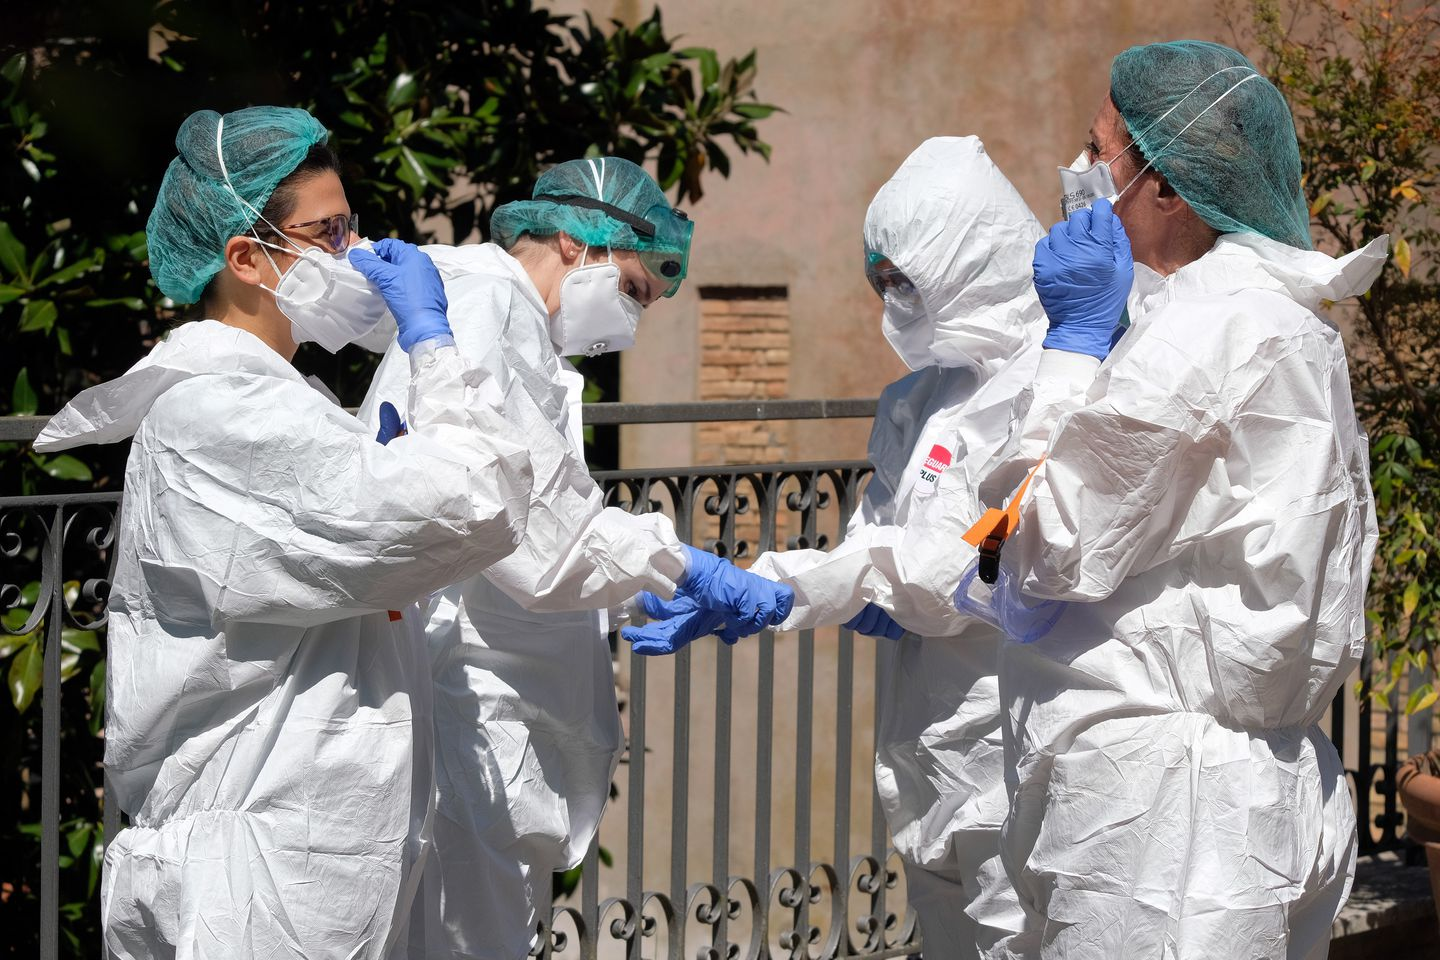 Coronavirus live updates: China's economy shrinks for first time in decades; U.S. plots course to reopening business